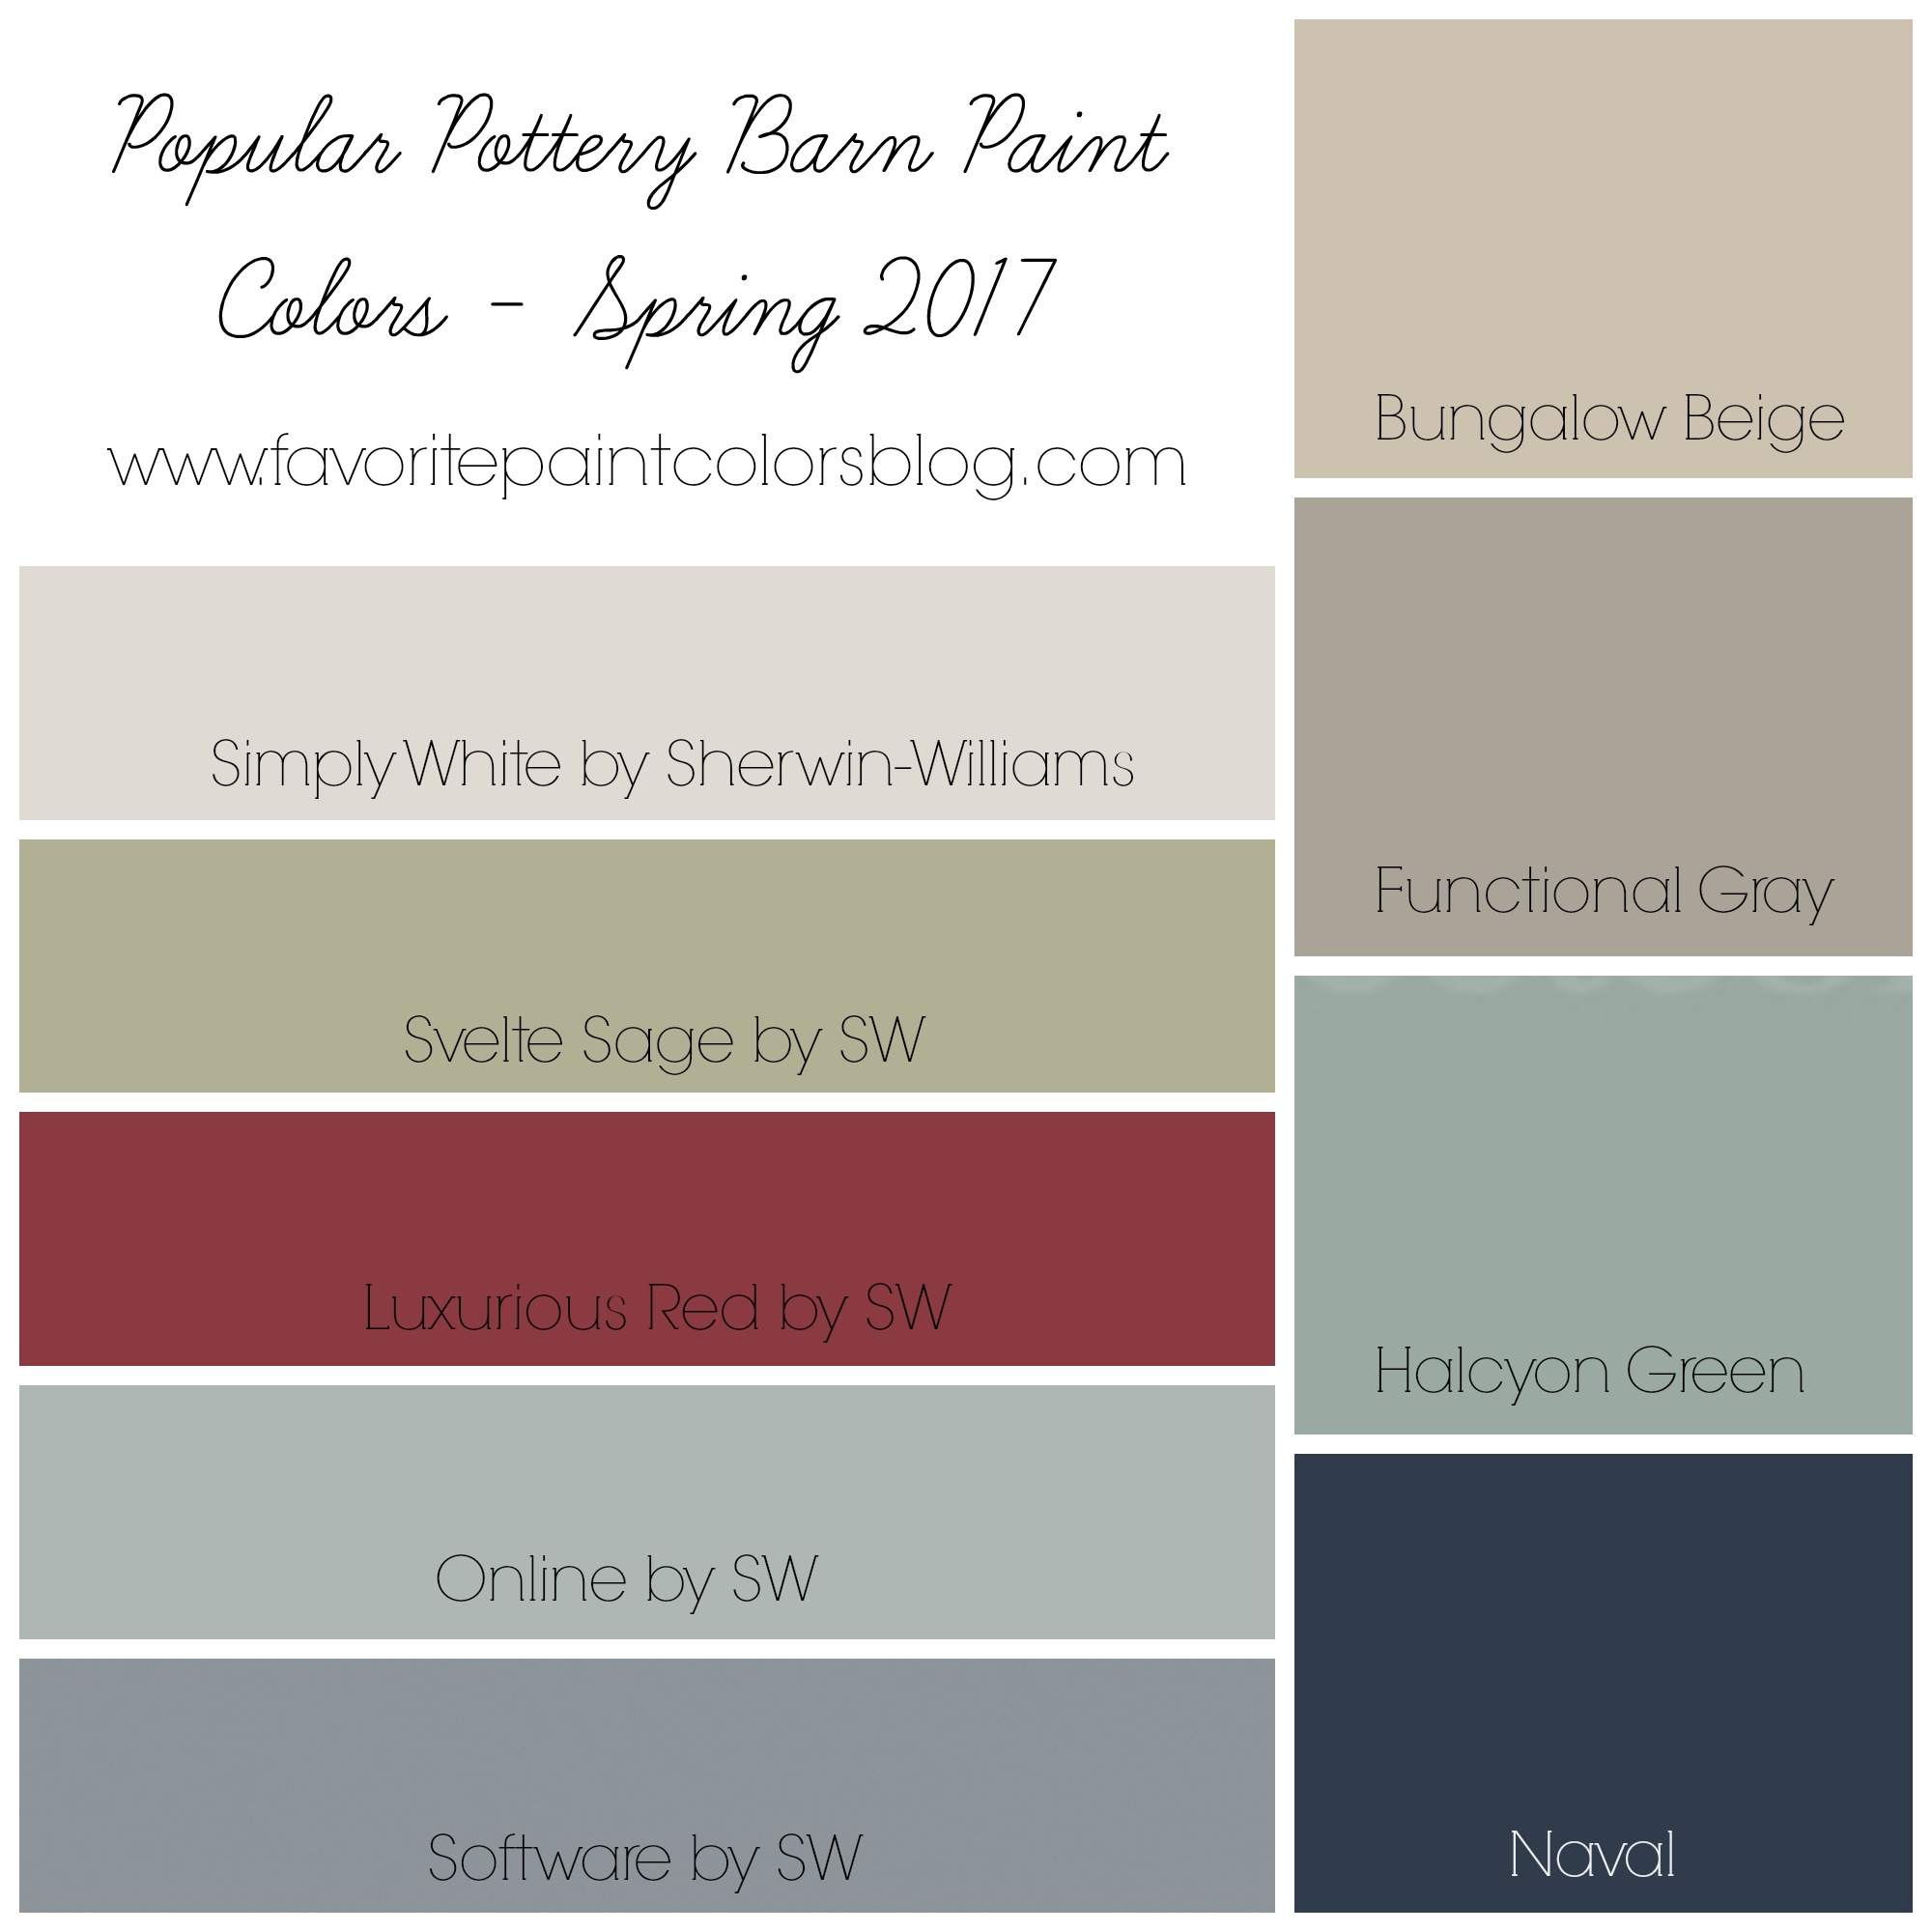 Most Popular Paint Colors Interesting Popular Pottery Barn Paint Colors  Favorite Paint Colors Blog 2017